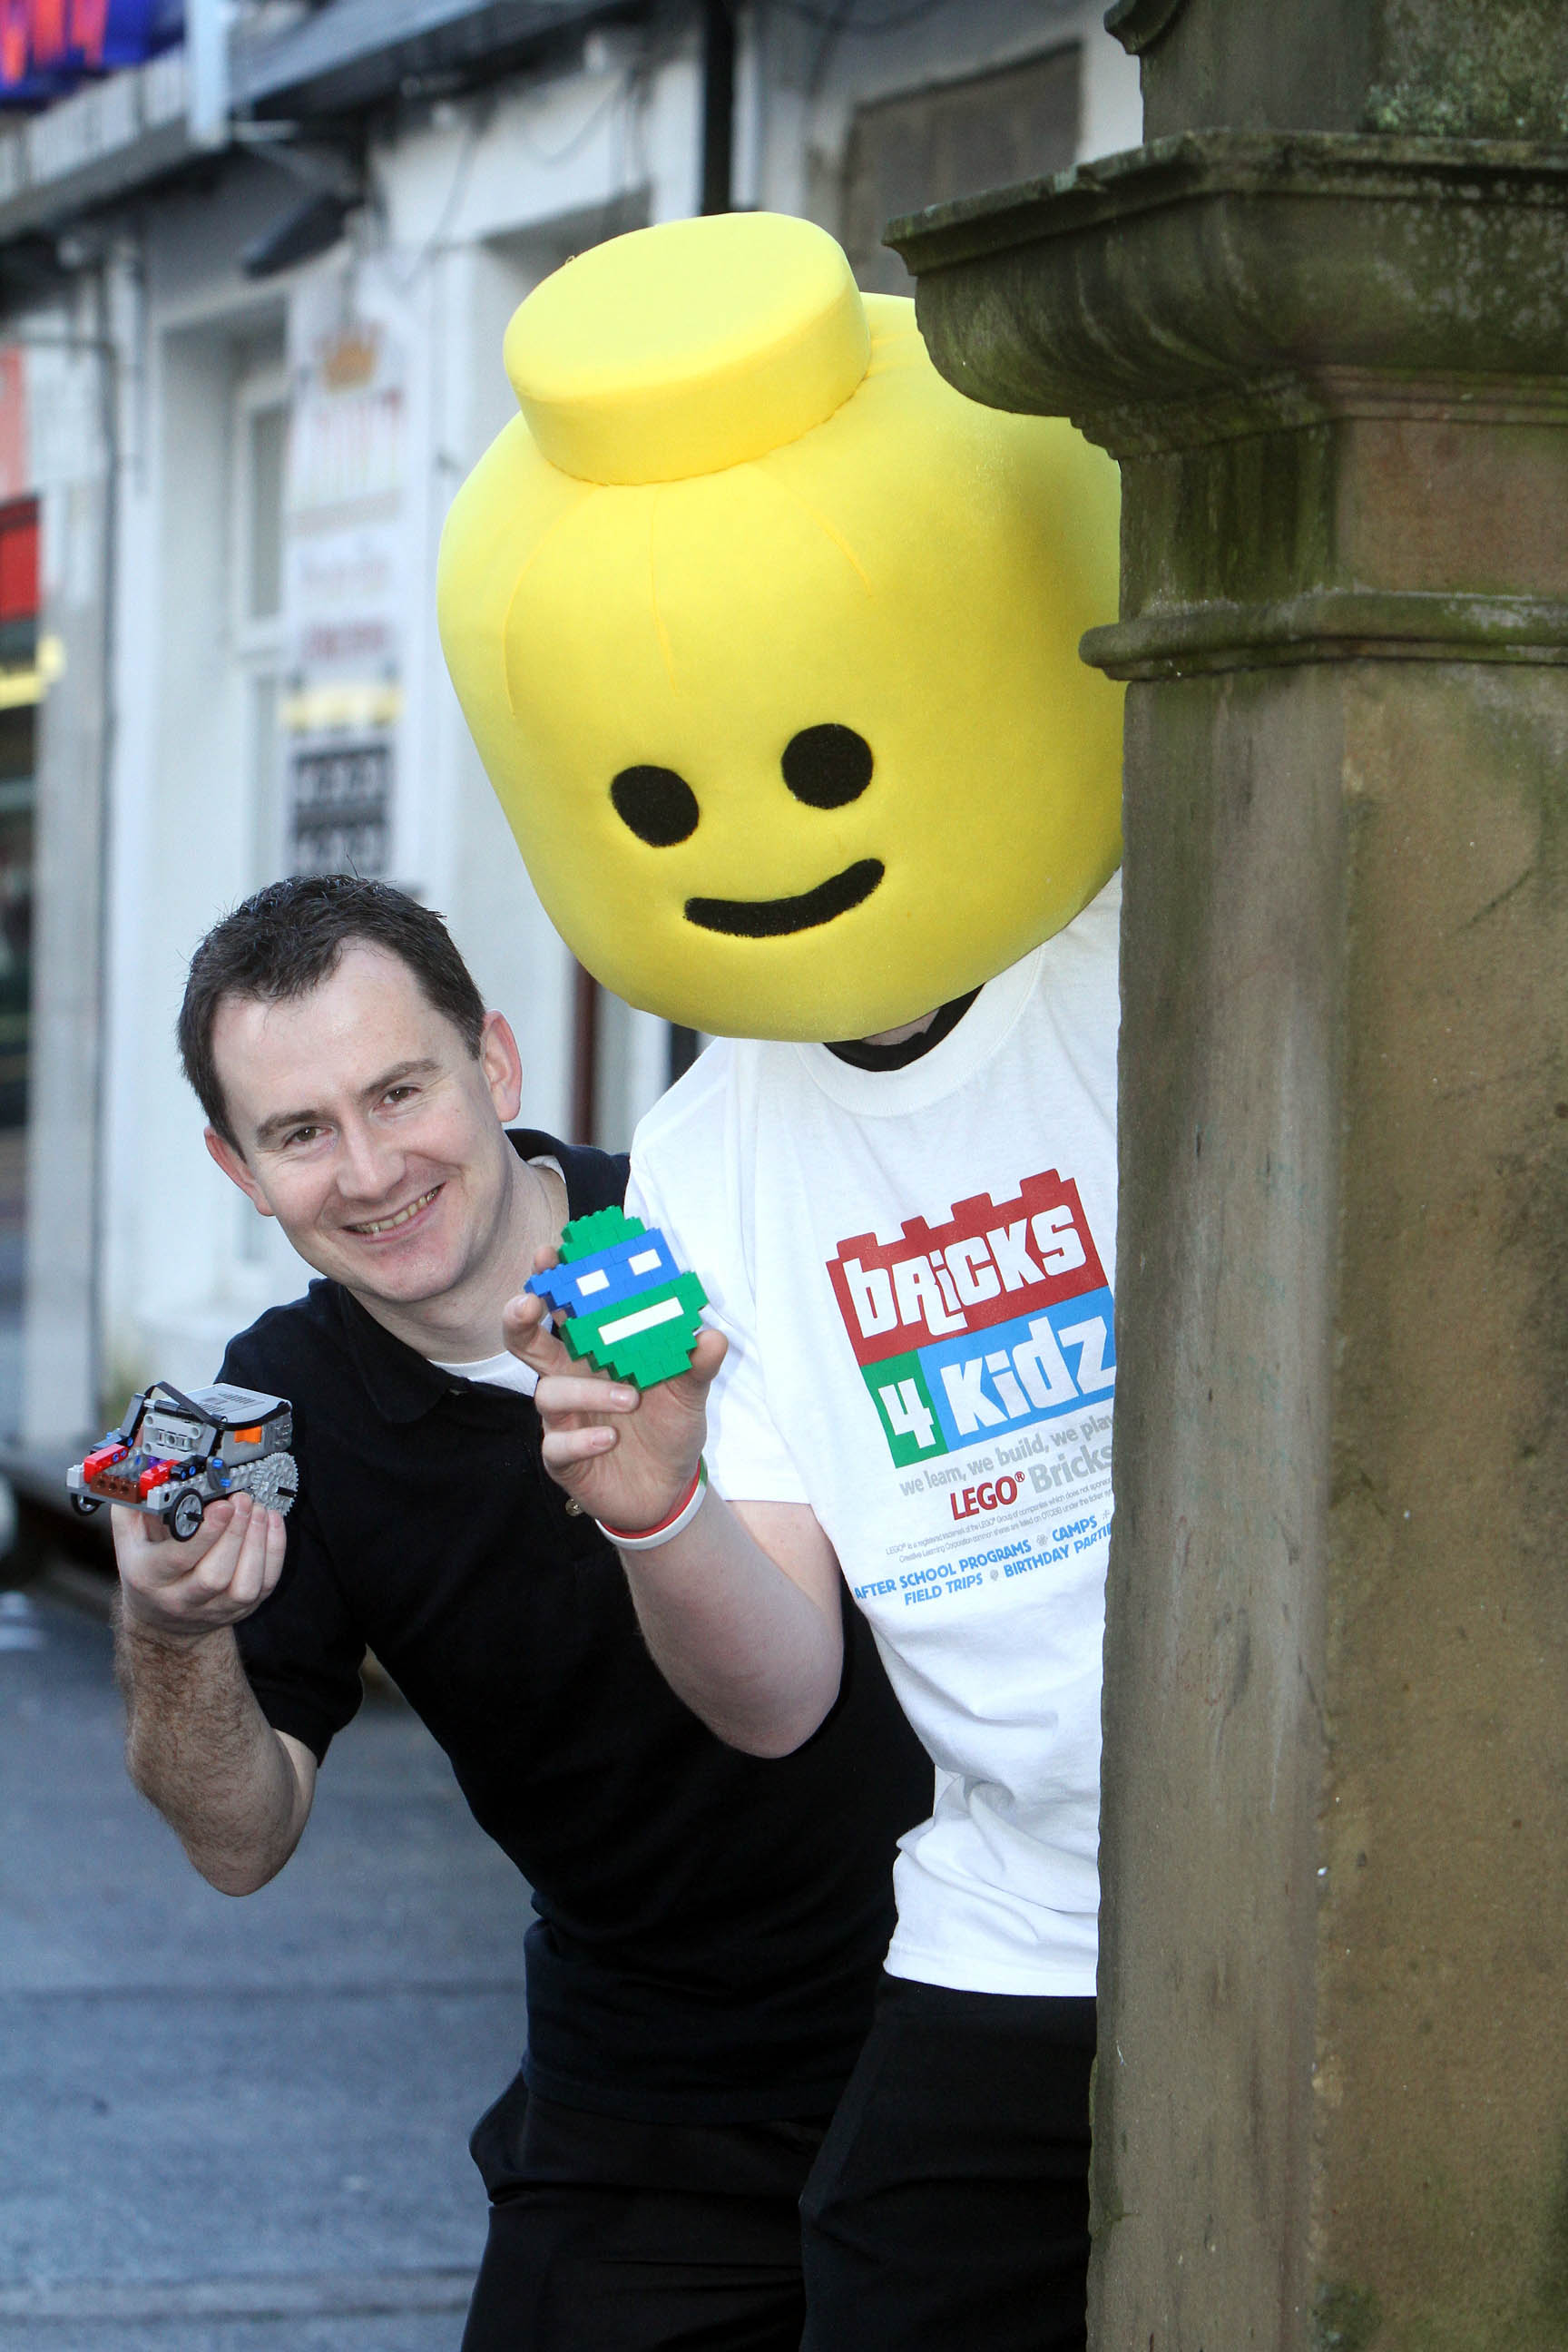 Keighley's 'Lego man' proves he's star attraction